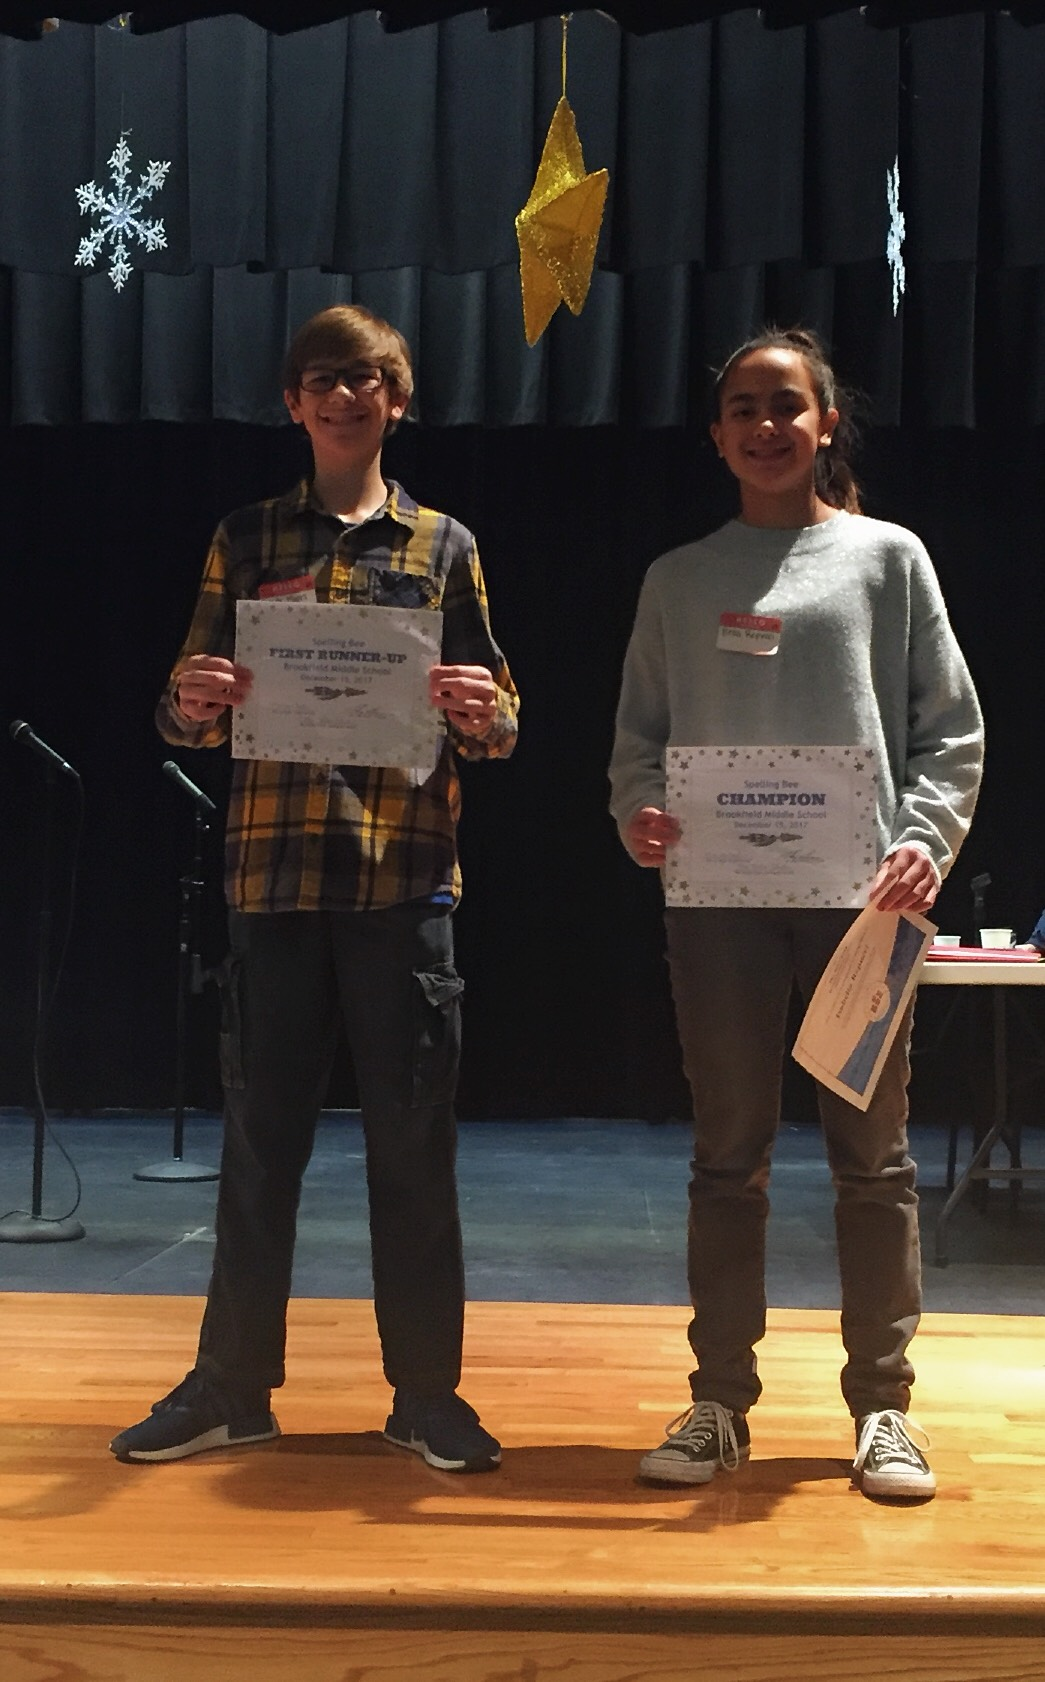 2017 Spelling Bee Champ Isabella Respucci and Runner-up Brady Myers